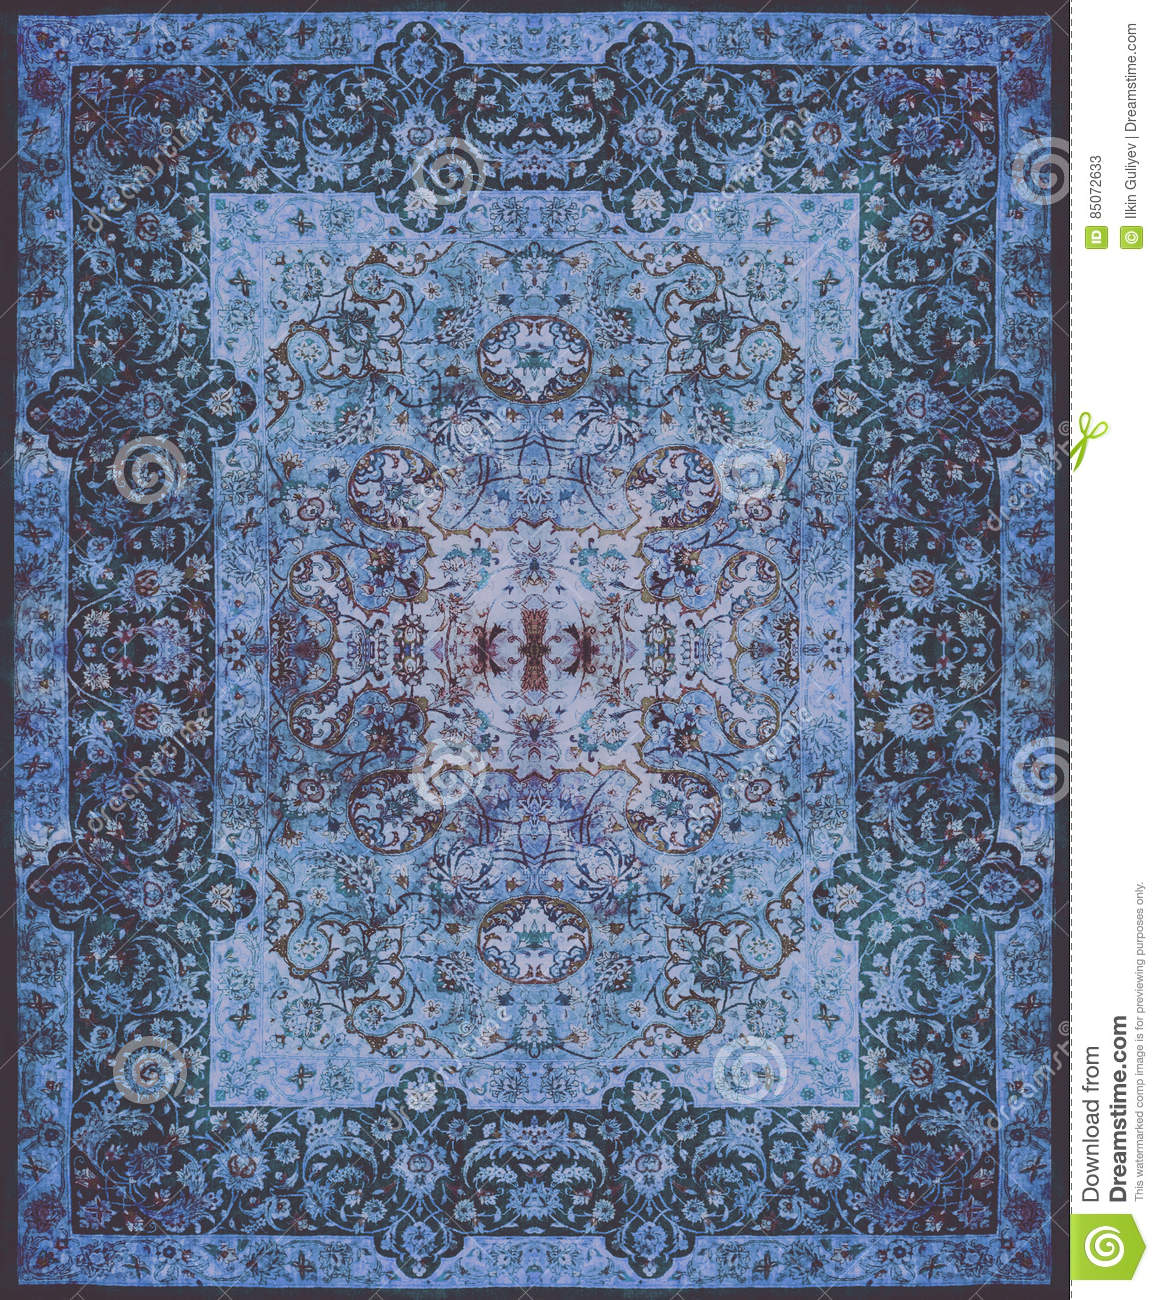 Persian Carpet Texture, abstract ornament. Round mandala pattern, Middle Eastern Traditional Carpet Fabric Texture. Turquoise milk